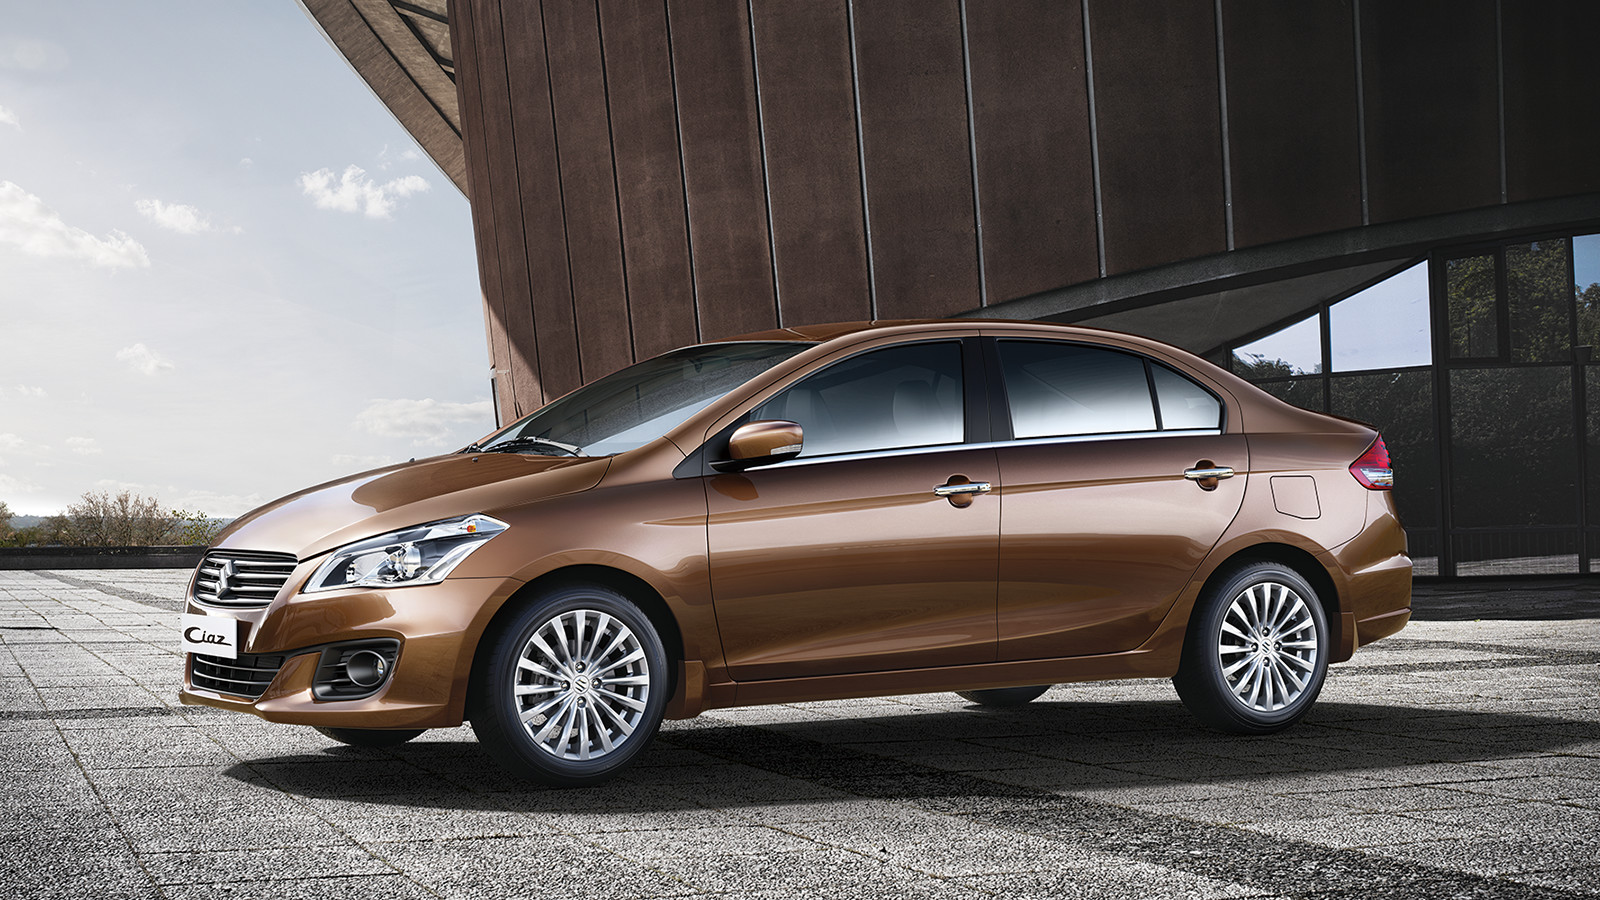 2016 Suzuki Ciaz Prices In Egypt Gulf Specs Amp Reviews For